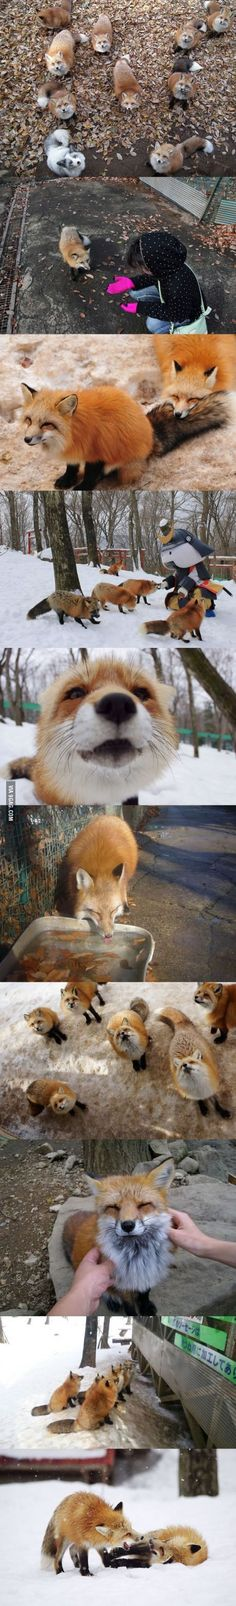 Fox Village in Japan. This is in the mountains near Shiroishi.